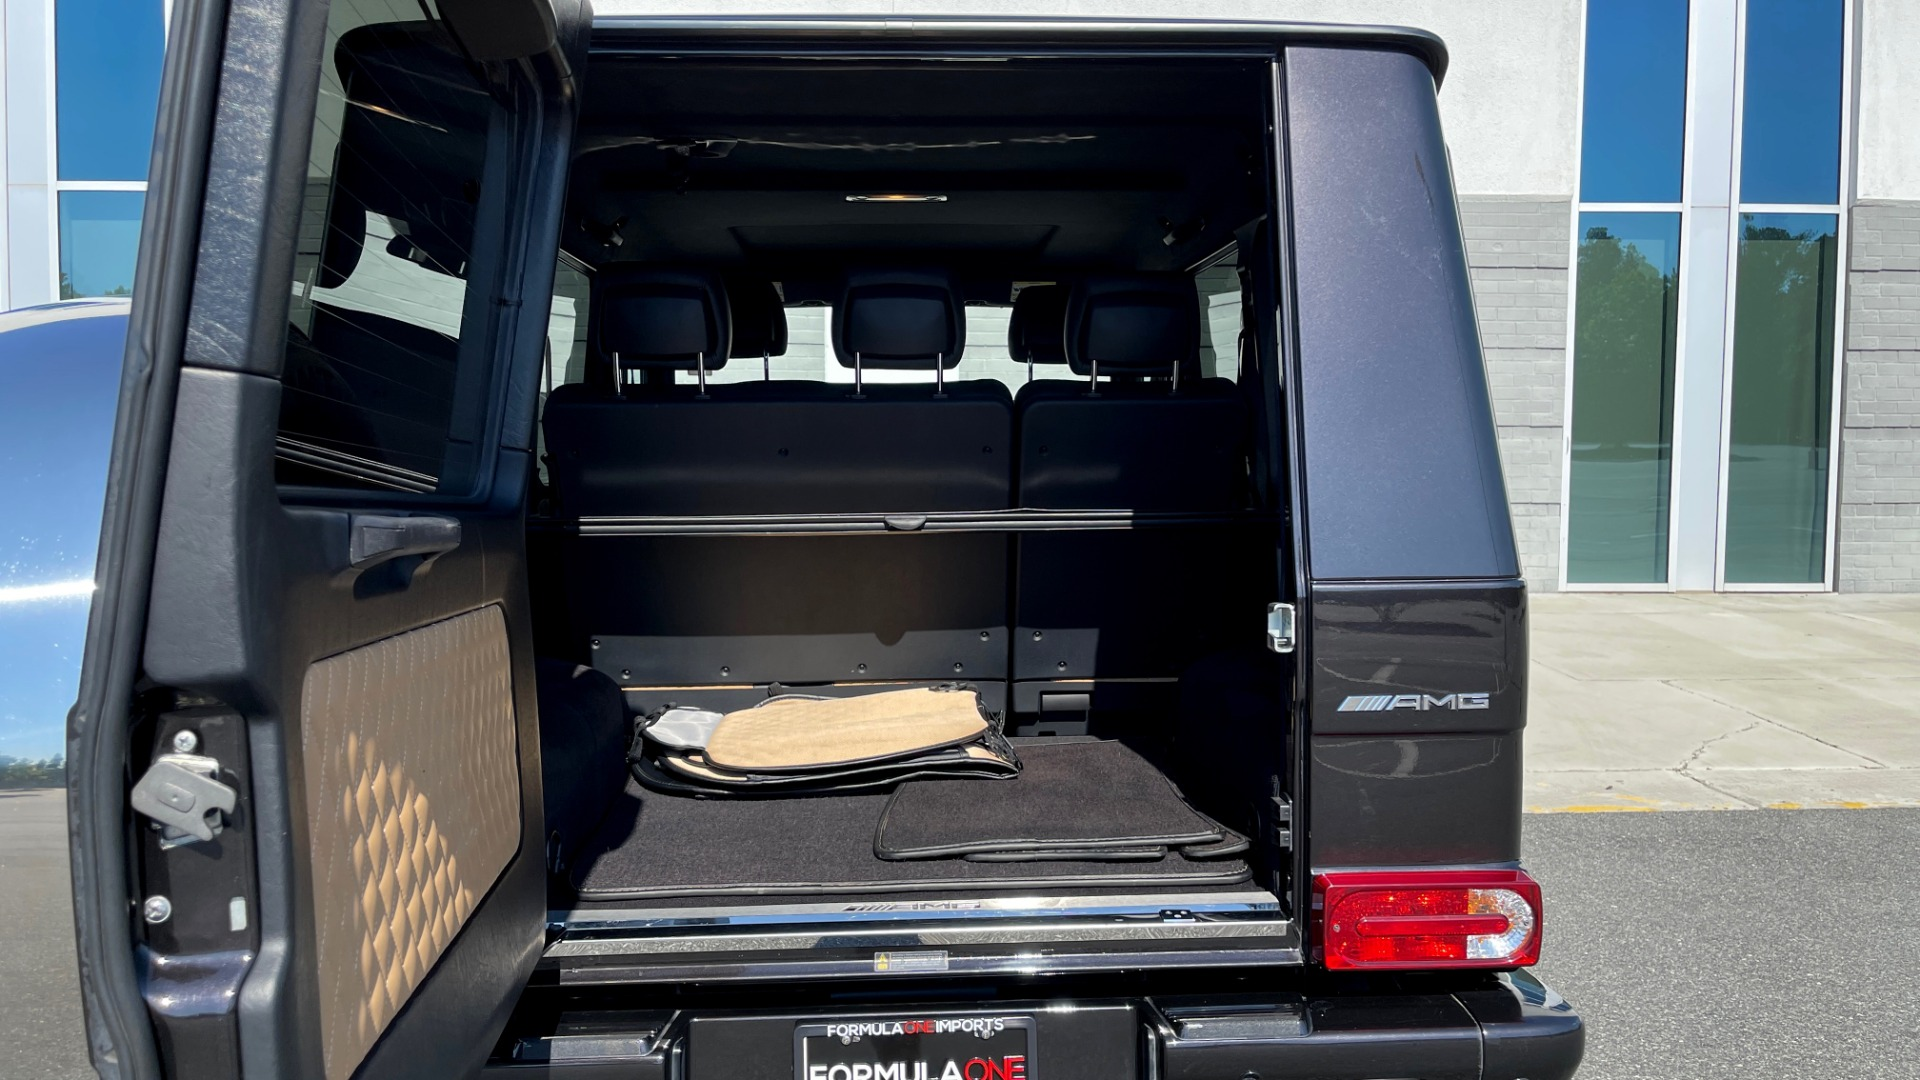 Used 2014 Mercedes-Benz G-CLASS G 63 AMG / DISGNO LEATHER / NAV / SUNROOF / REARVIEW for sale $88,999 at Formula Imports in Charlotte NC 28227 17